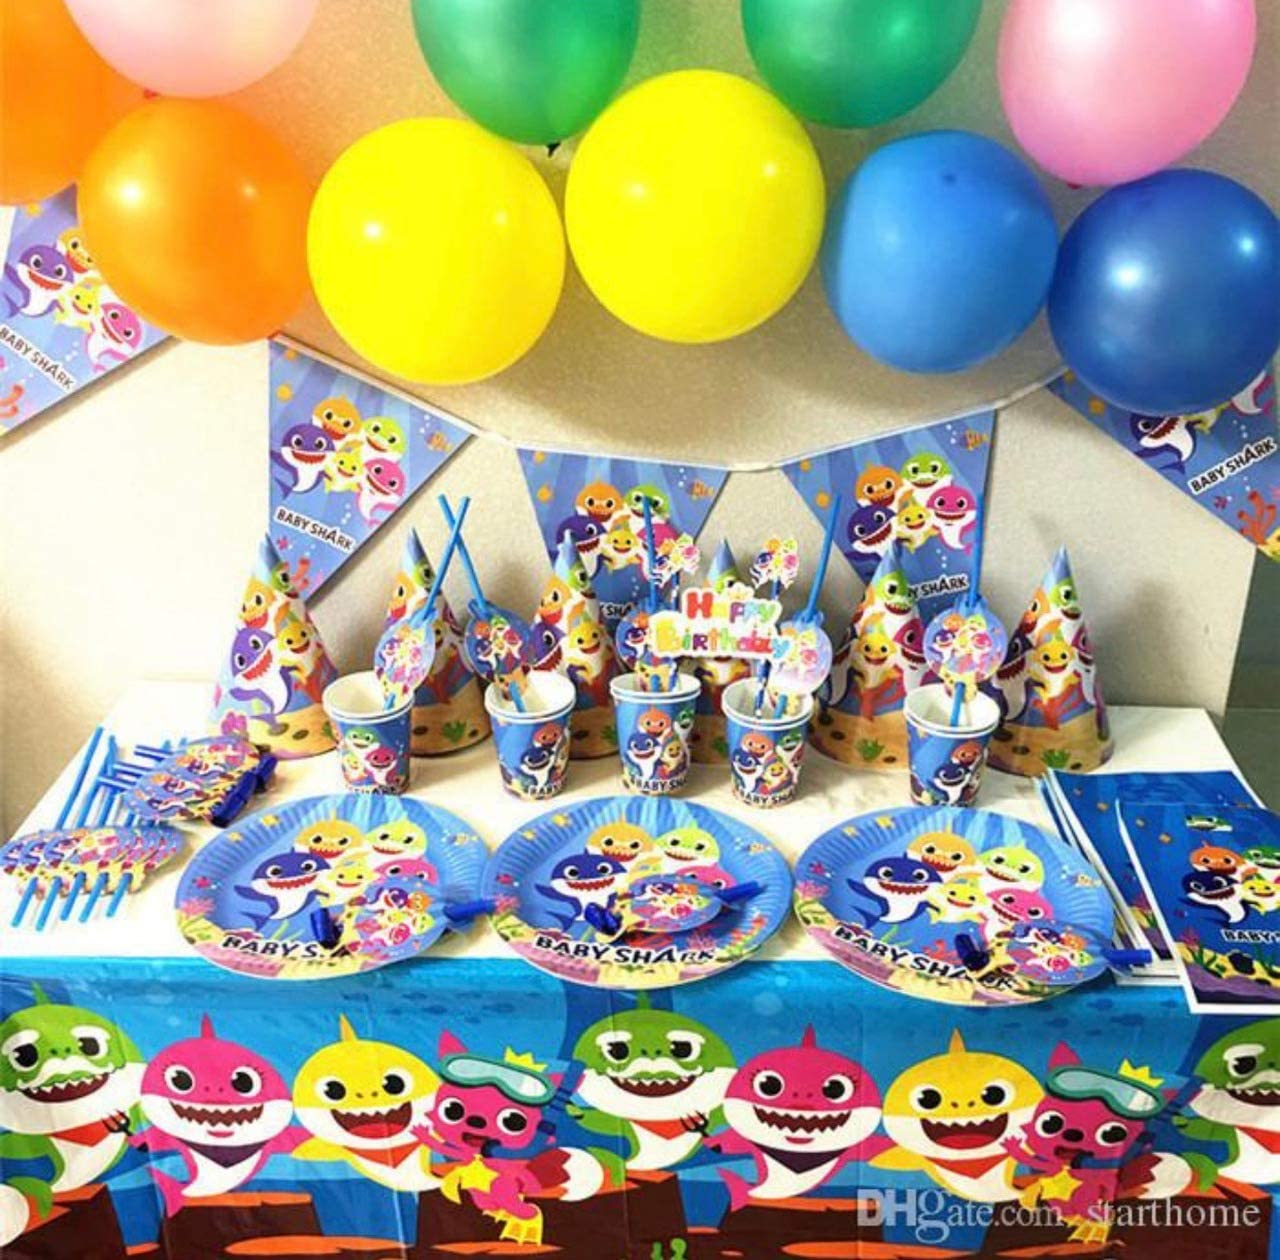 Baby Shark Birthday Party 2 PACKS of 10 Cups and 10 Straws